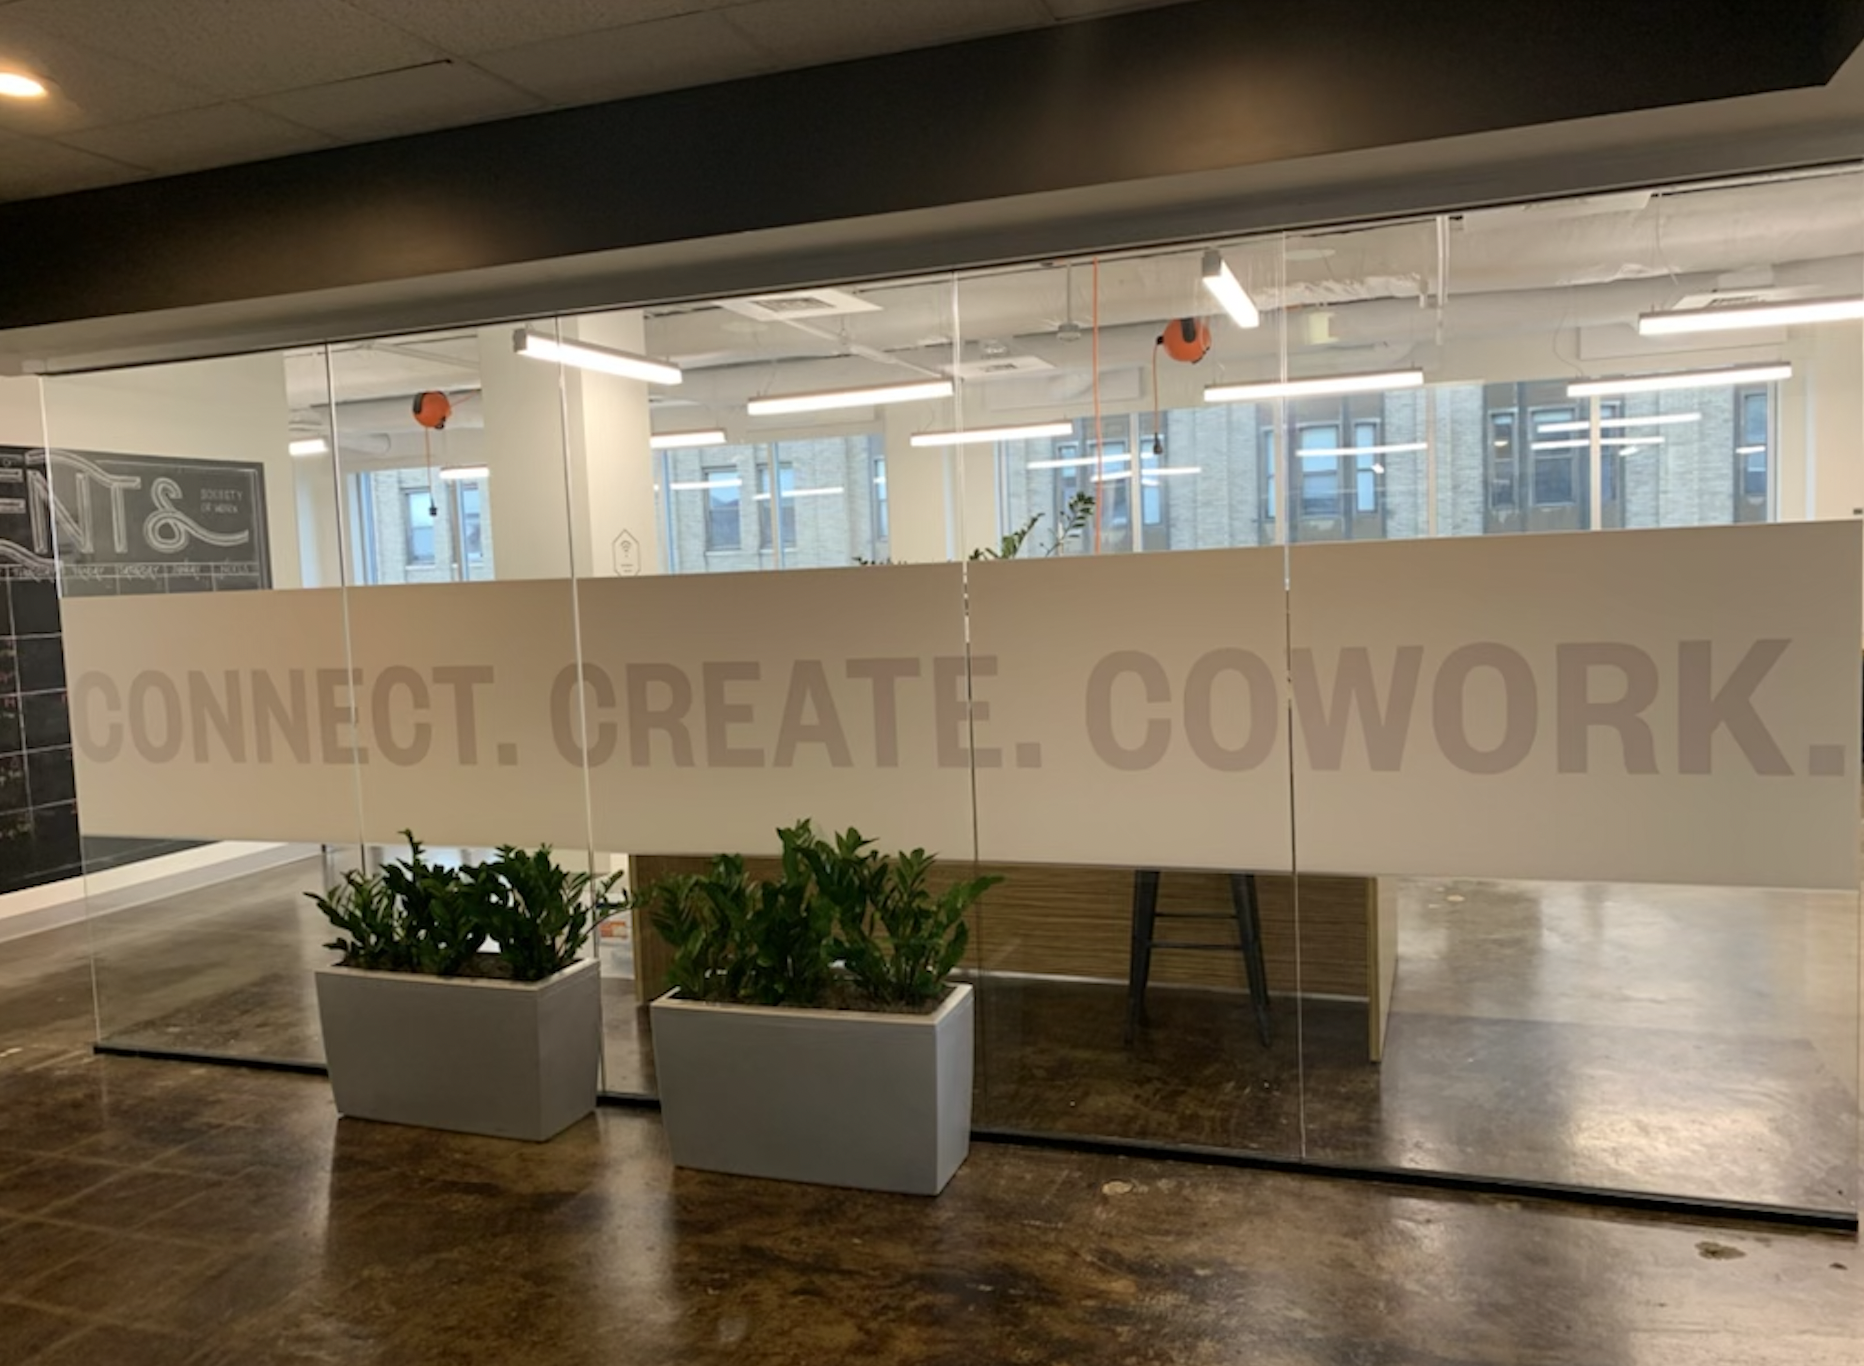 Photo of an office space with a large glass screen that reads ''Connect.Create.Cowork.''